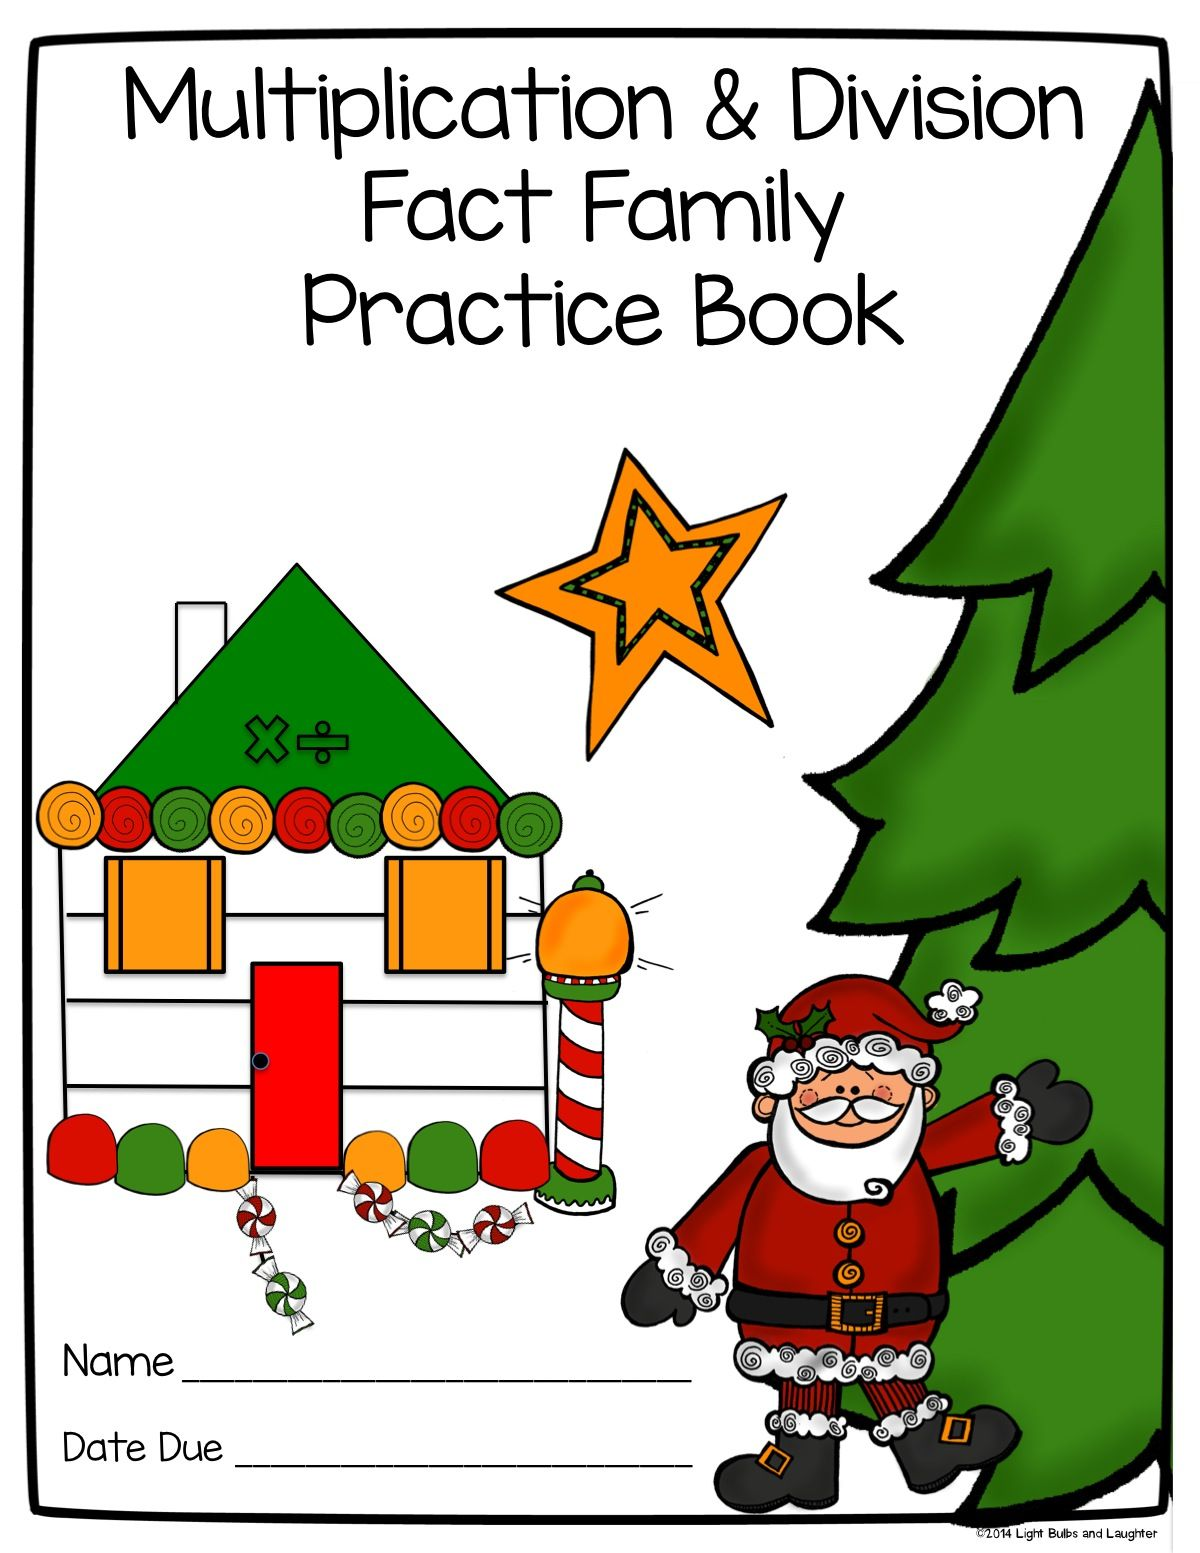 Multiplication and Division Fact Family Practice Book Cover ...